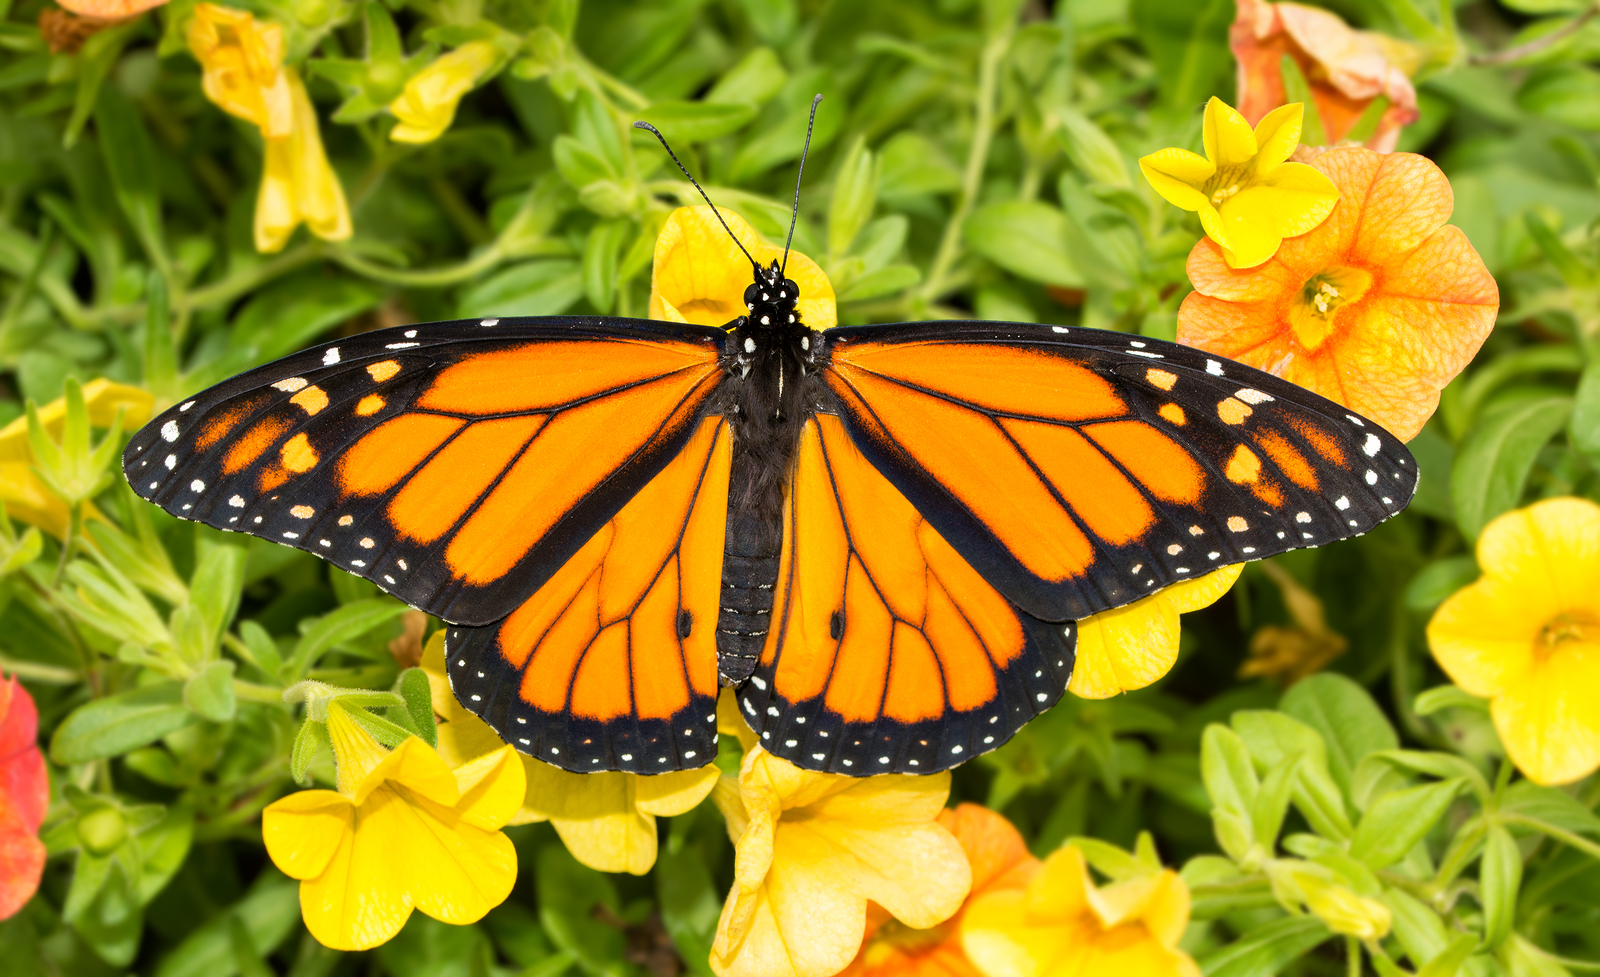 How Do You Tell the Difference Between a Male and Female Monarch?